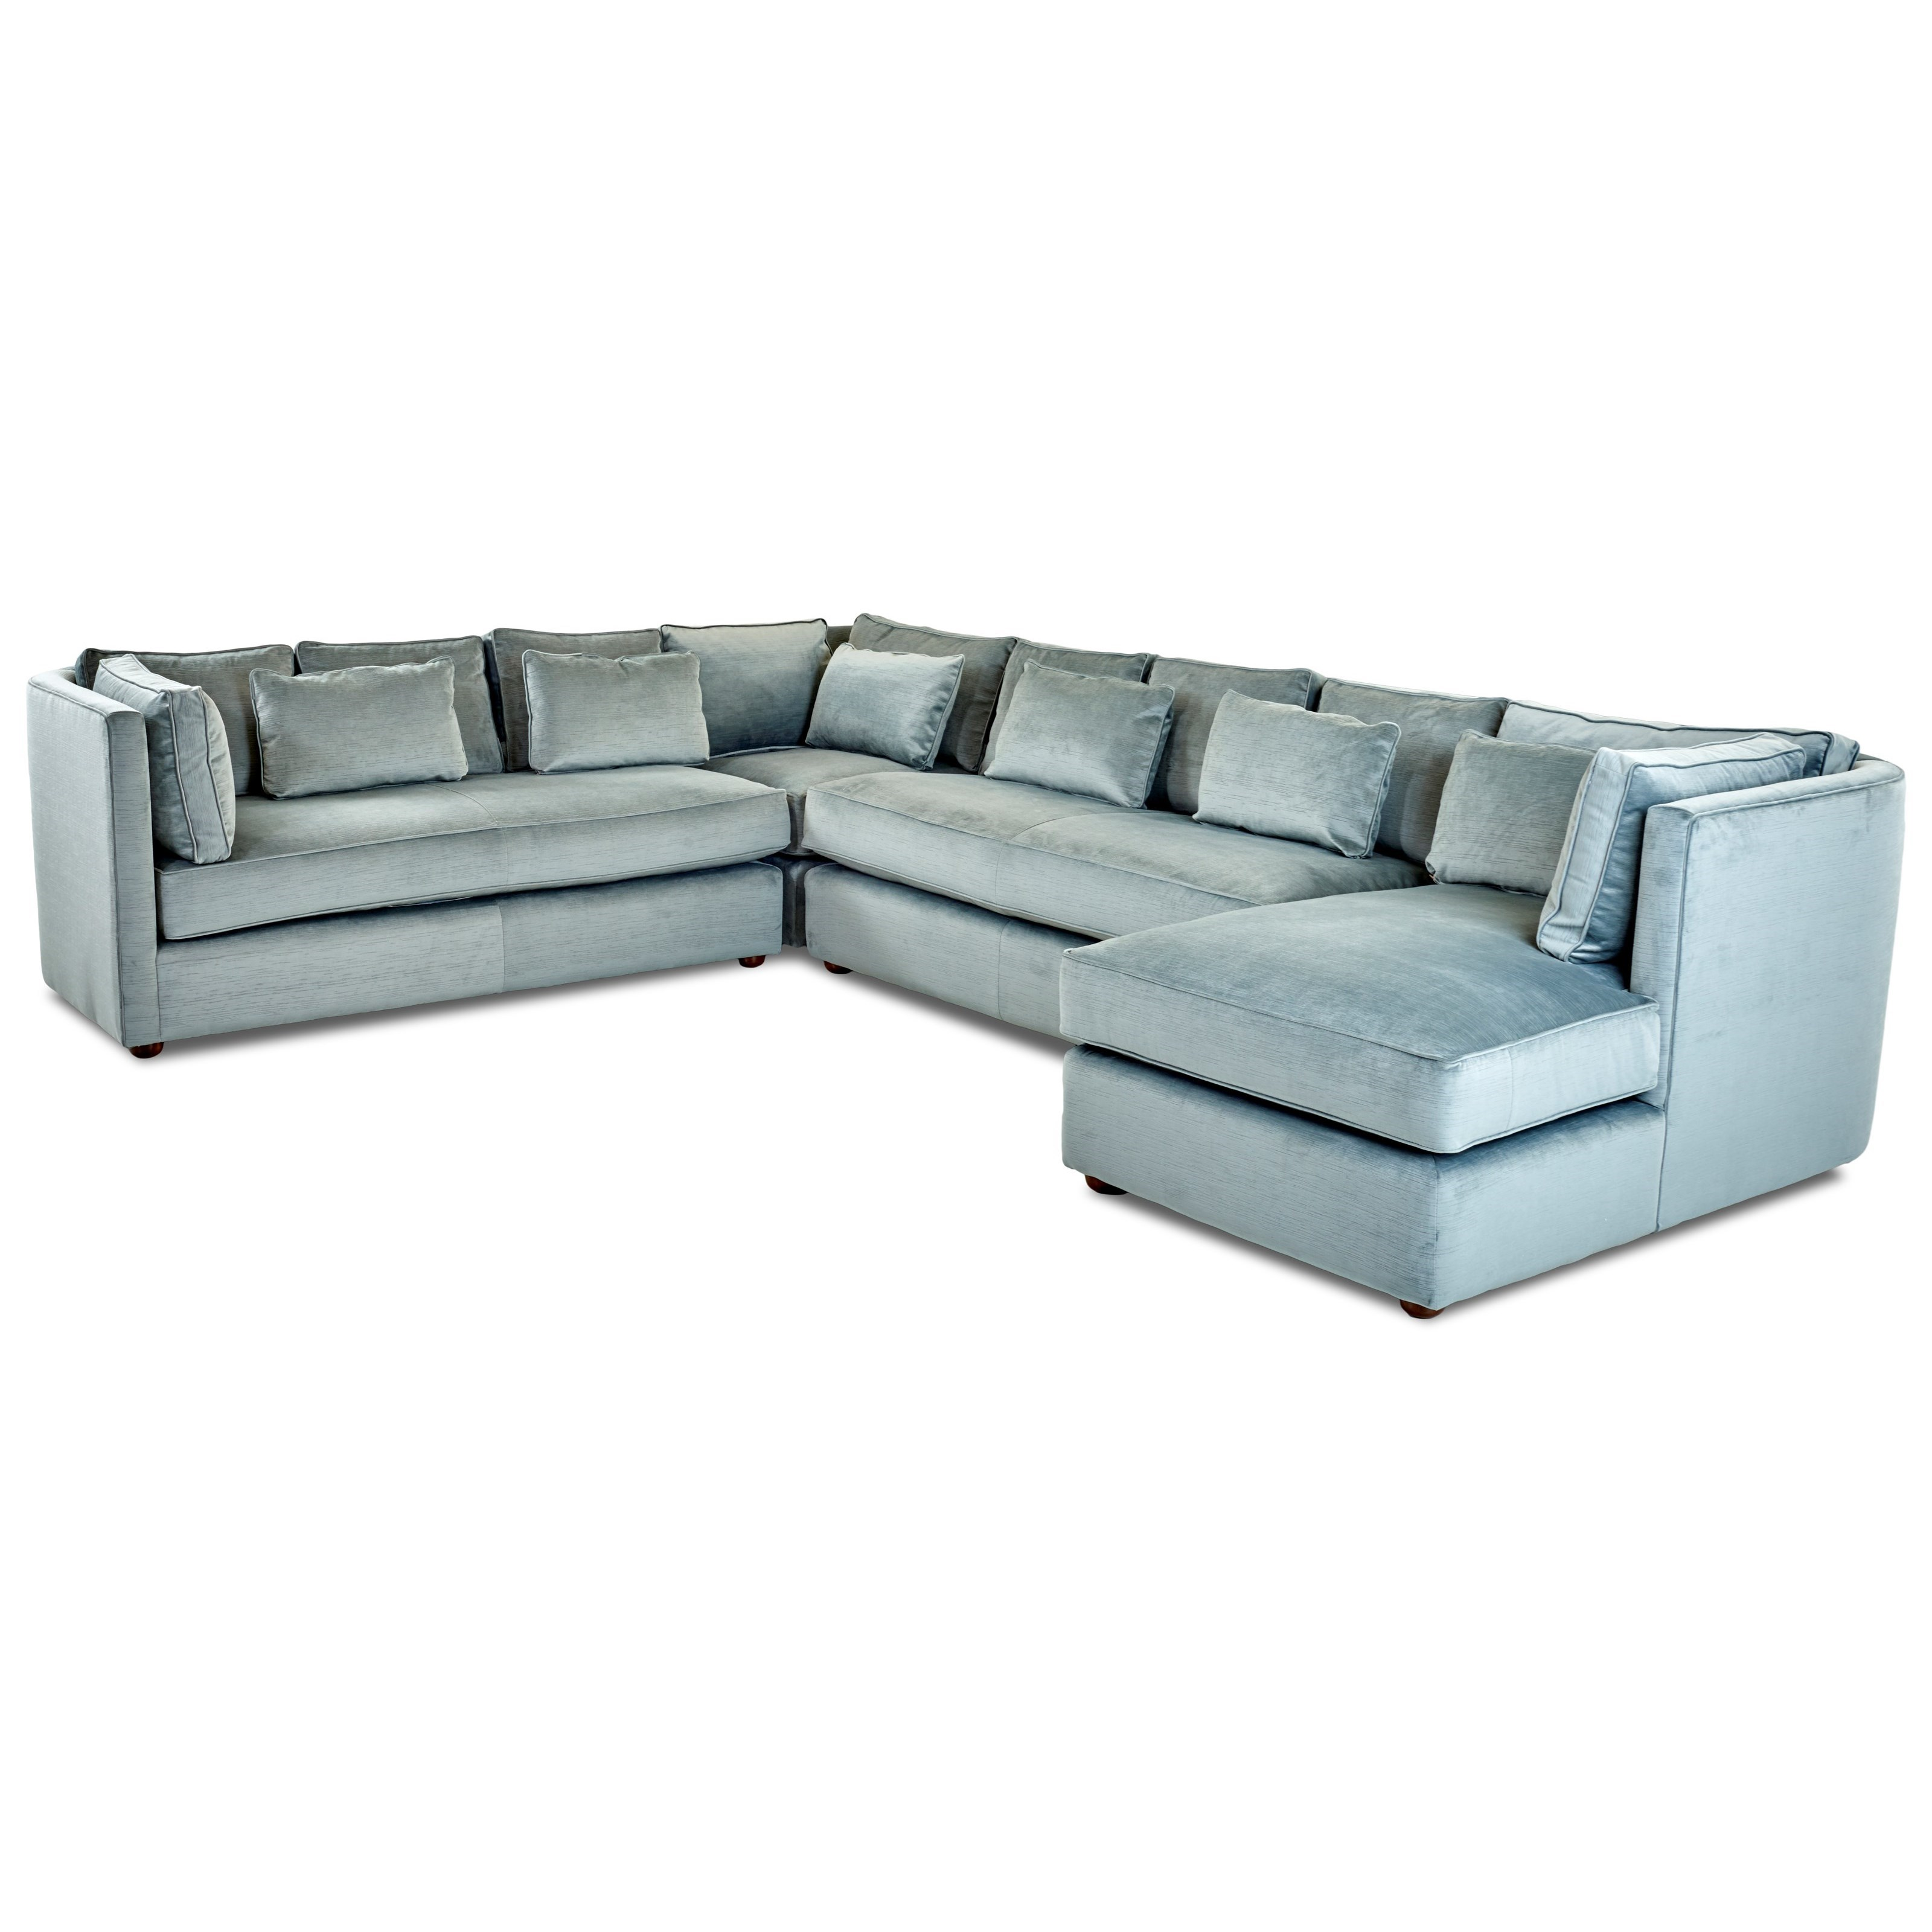 Lounge Furniture Outlet Cordelle Leather Lounge Leather Chaise